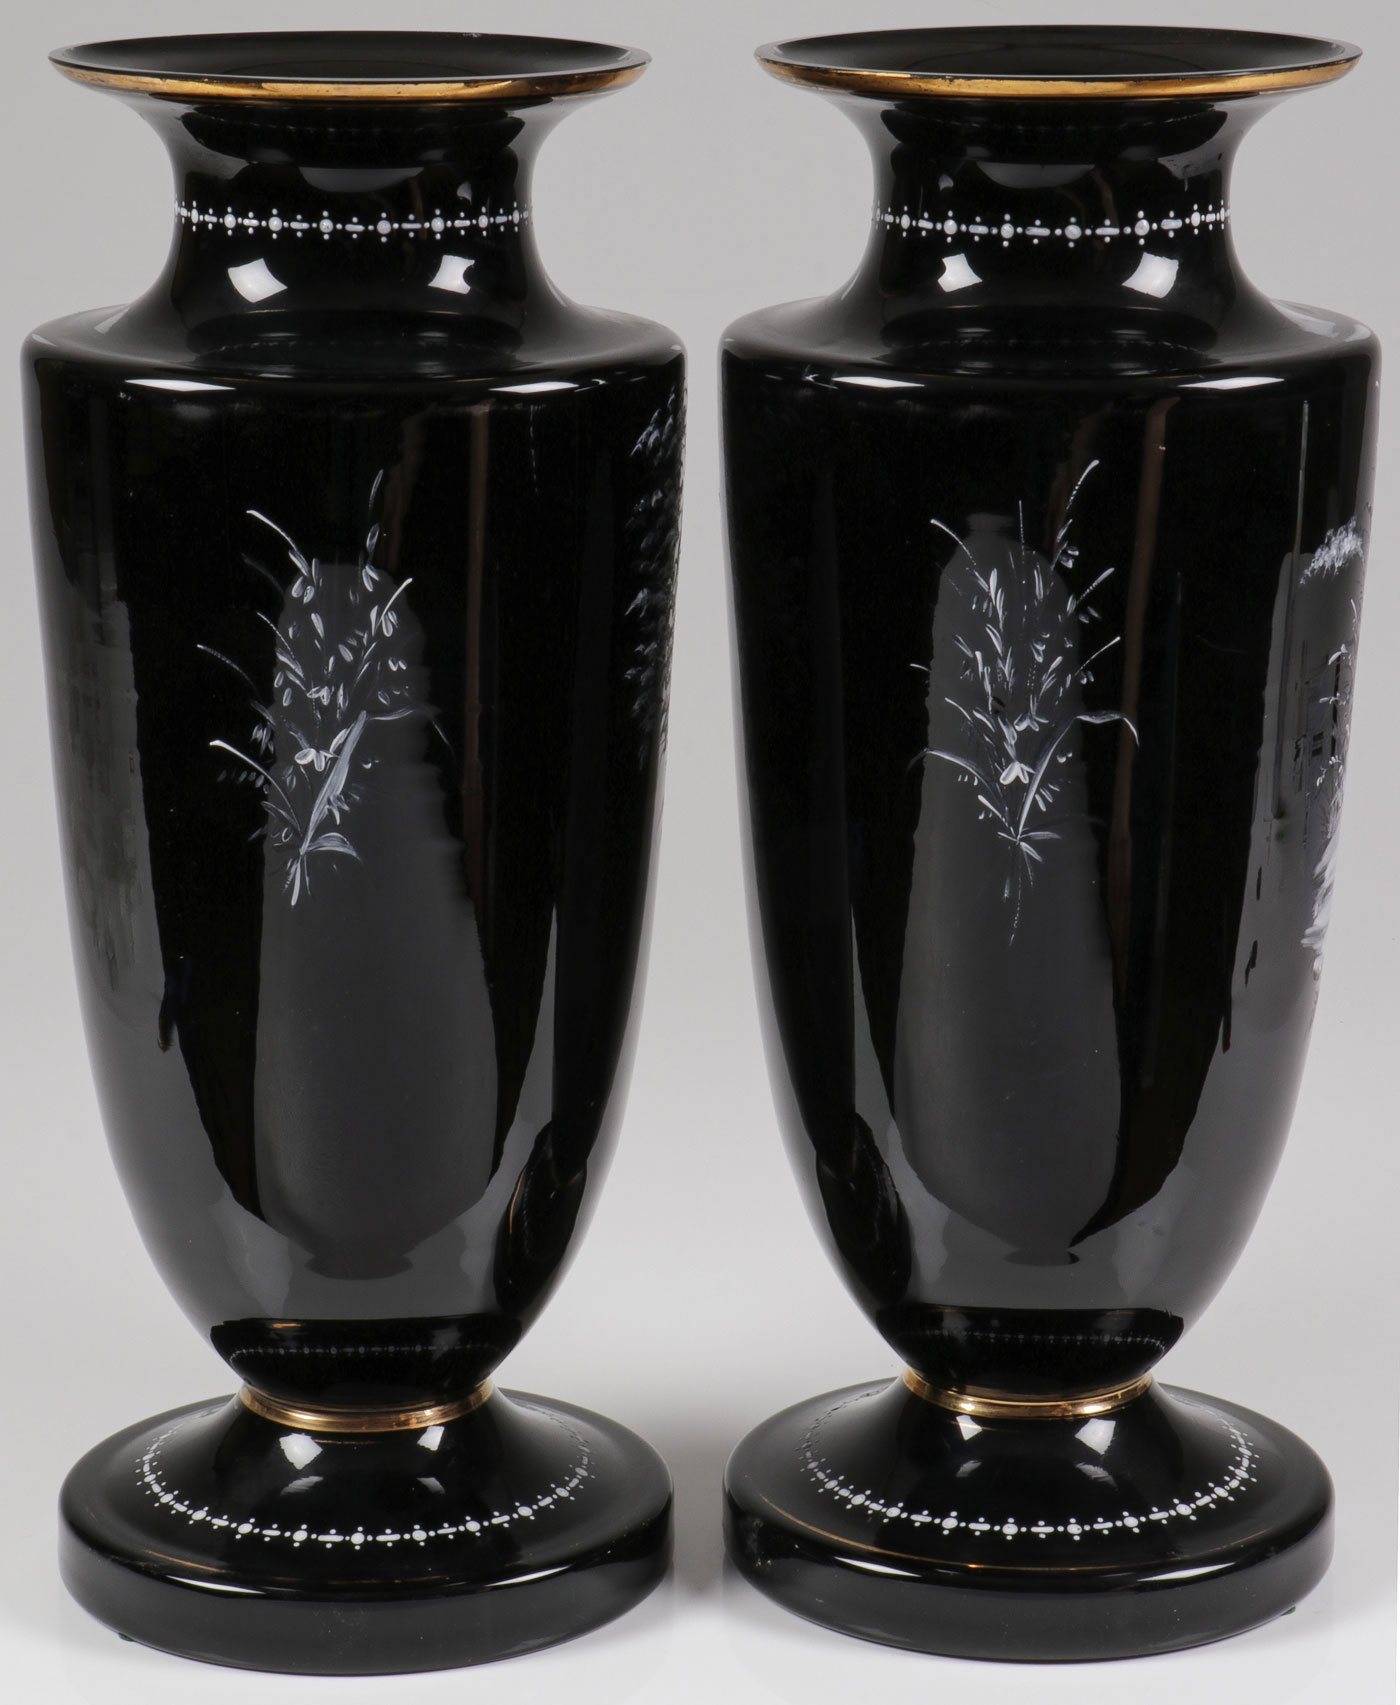 Lot 47 - PAIR MONUMENTAL MARY GREGORY MANTEL VASES, C 1890